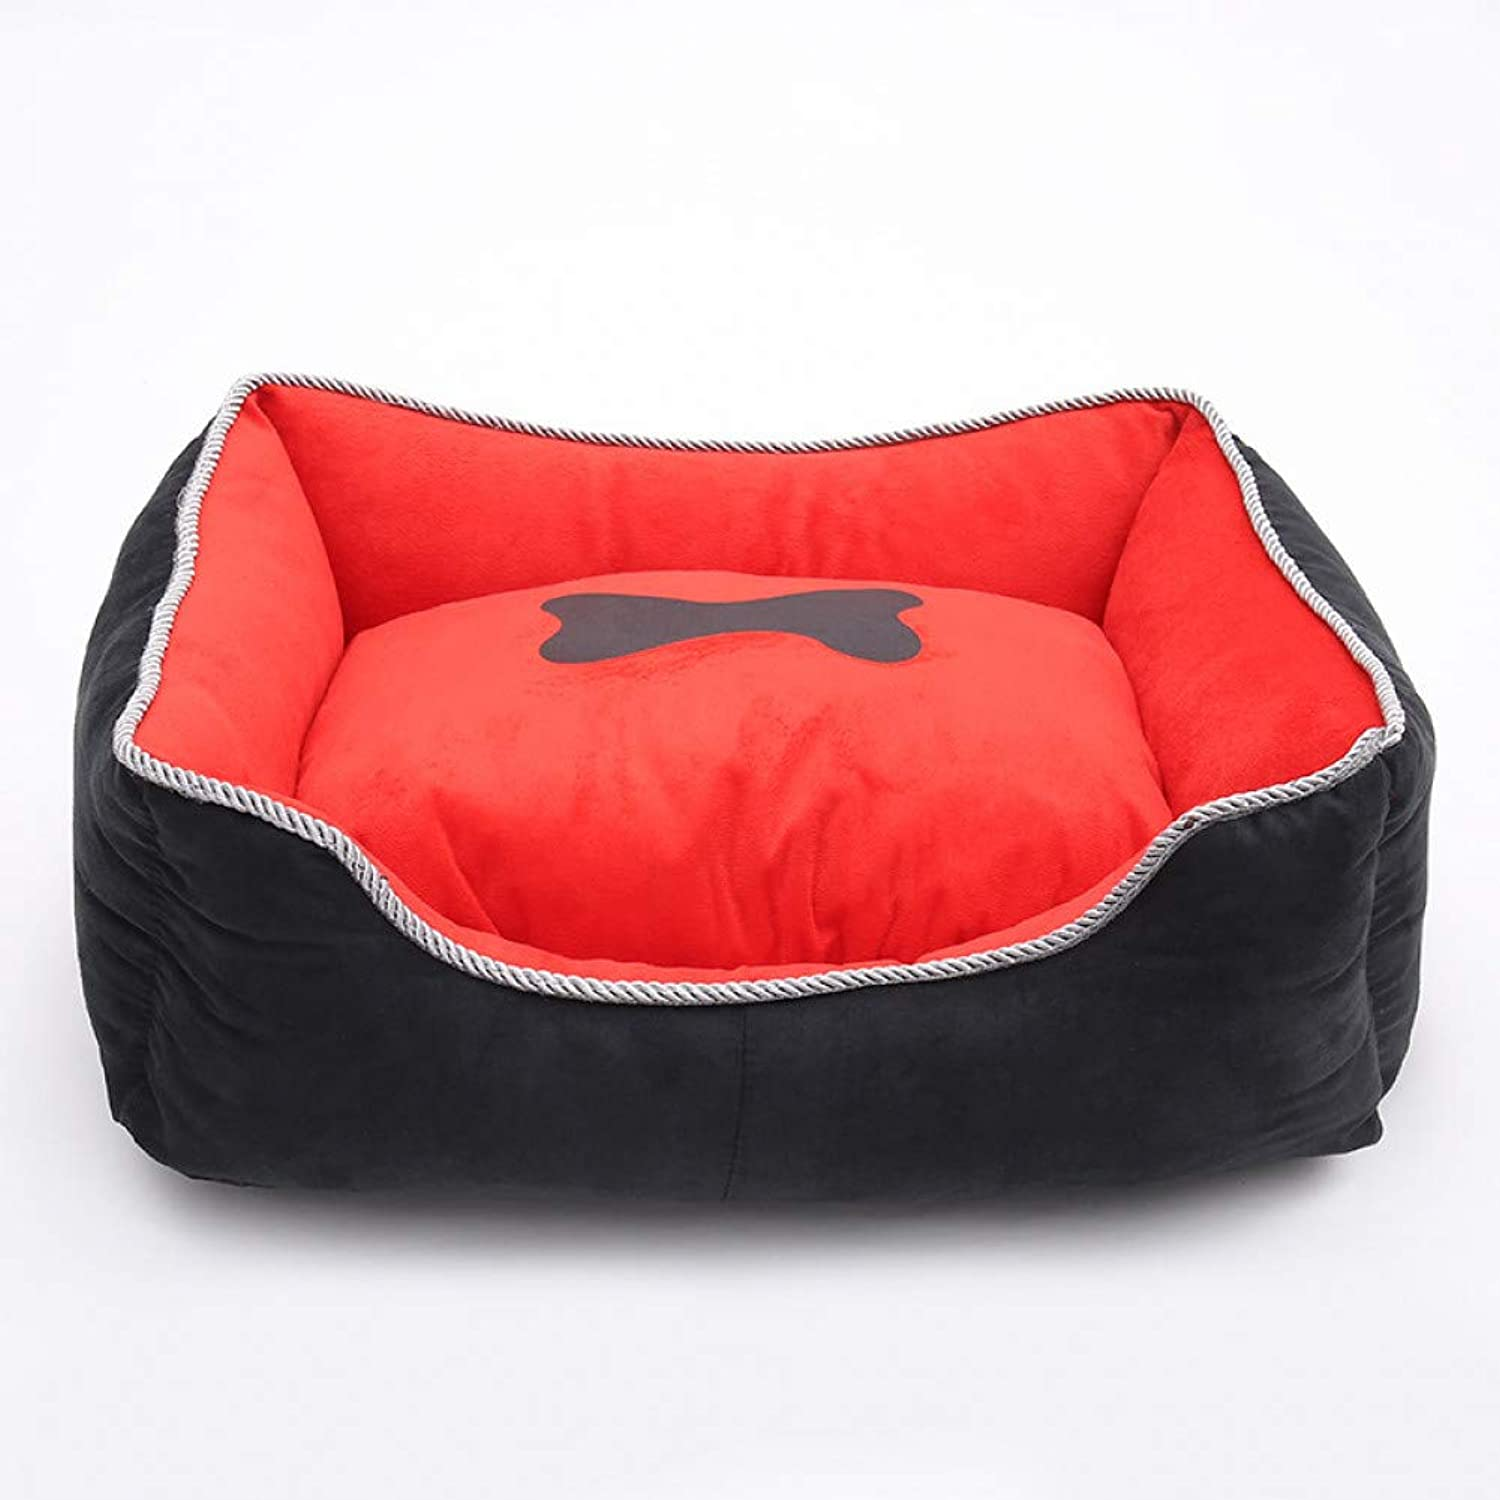 CZHCFF Dog Kennel House Pet Bed for Cats Small Dog Pug Pomeranian Detachable Cushion Pillow Soft Pet Sofas Animal Bed